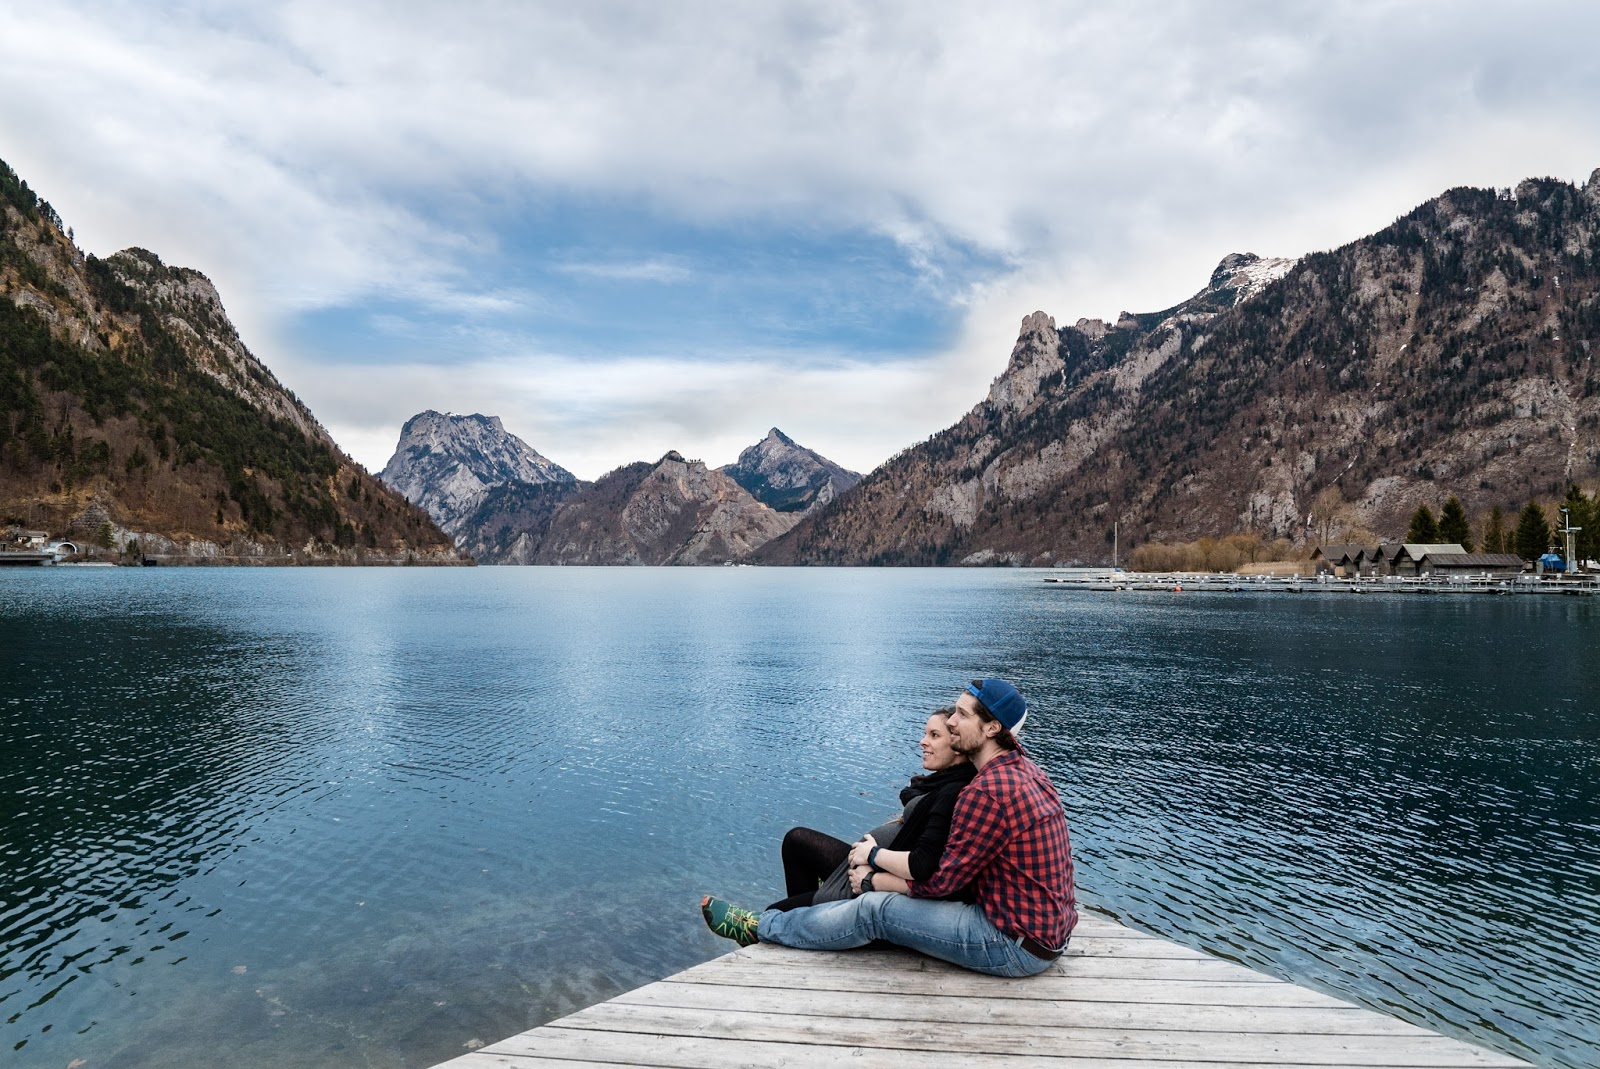 Couple on a boardwalk looking over a lake and surrounded by mountains